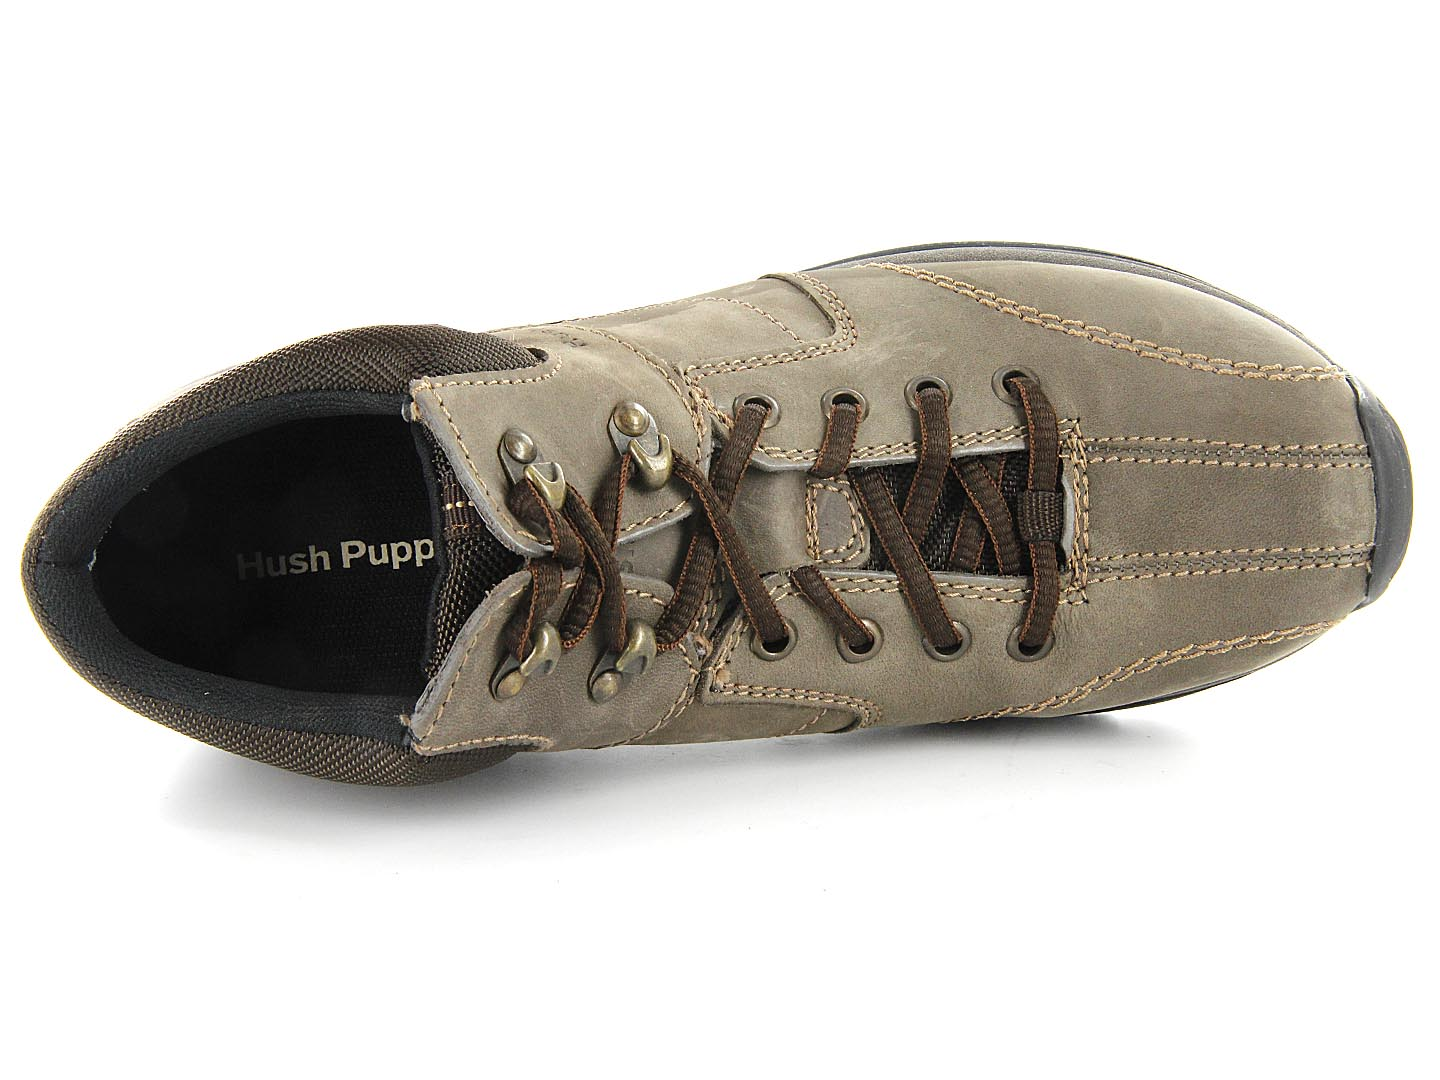 1726bd7280c HUSH PUPPIES HB 8691 HB GRIS 25.0 - 32.0